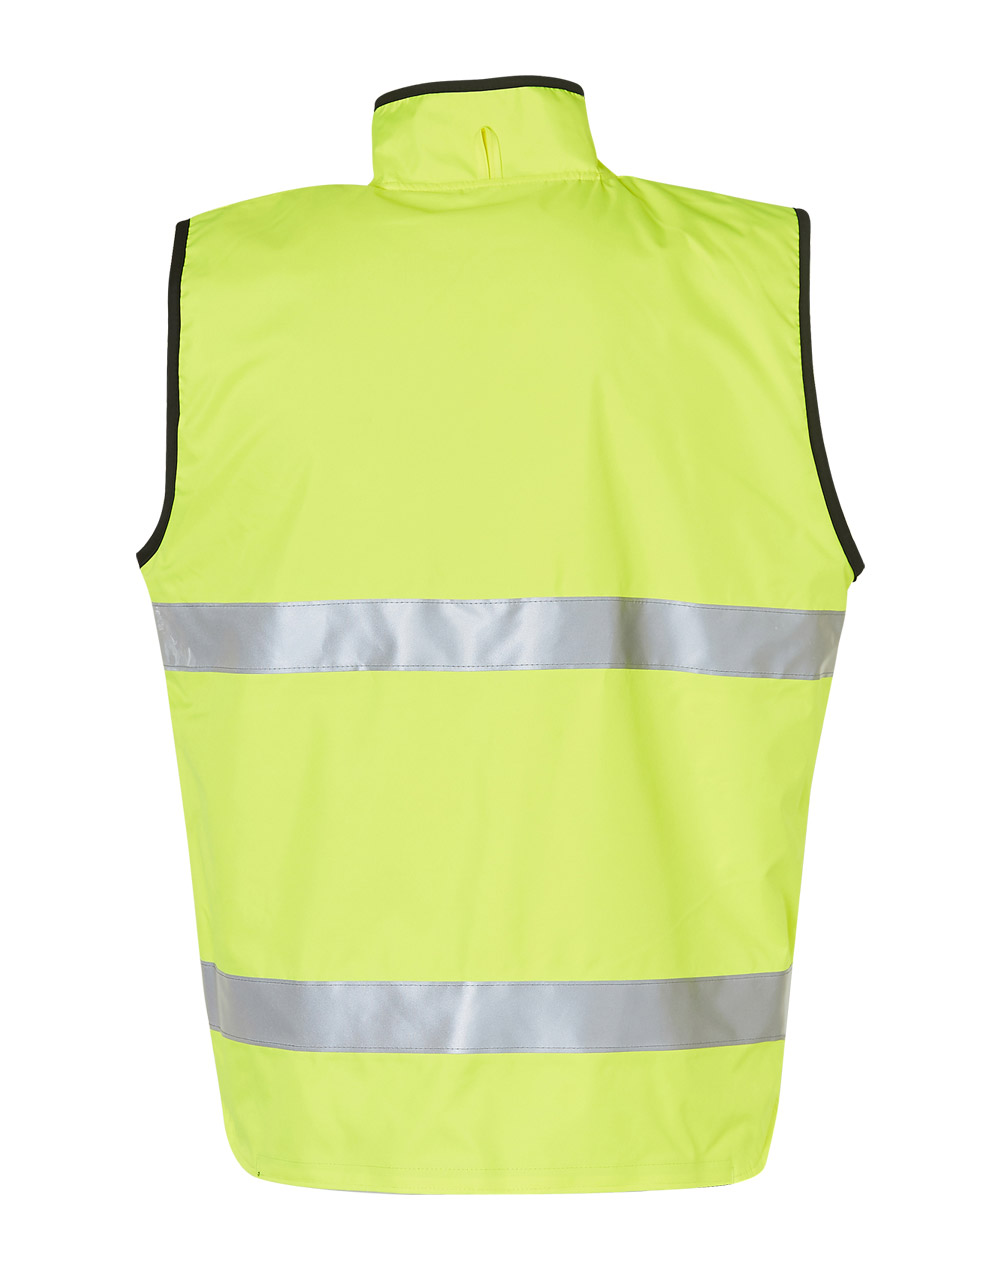 https://s3-ap-southeast-1.amazonaws.com/ws-imgs/WORKWEAR/SW49_YellowNavy_Back.jpg